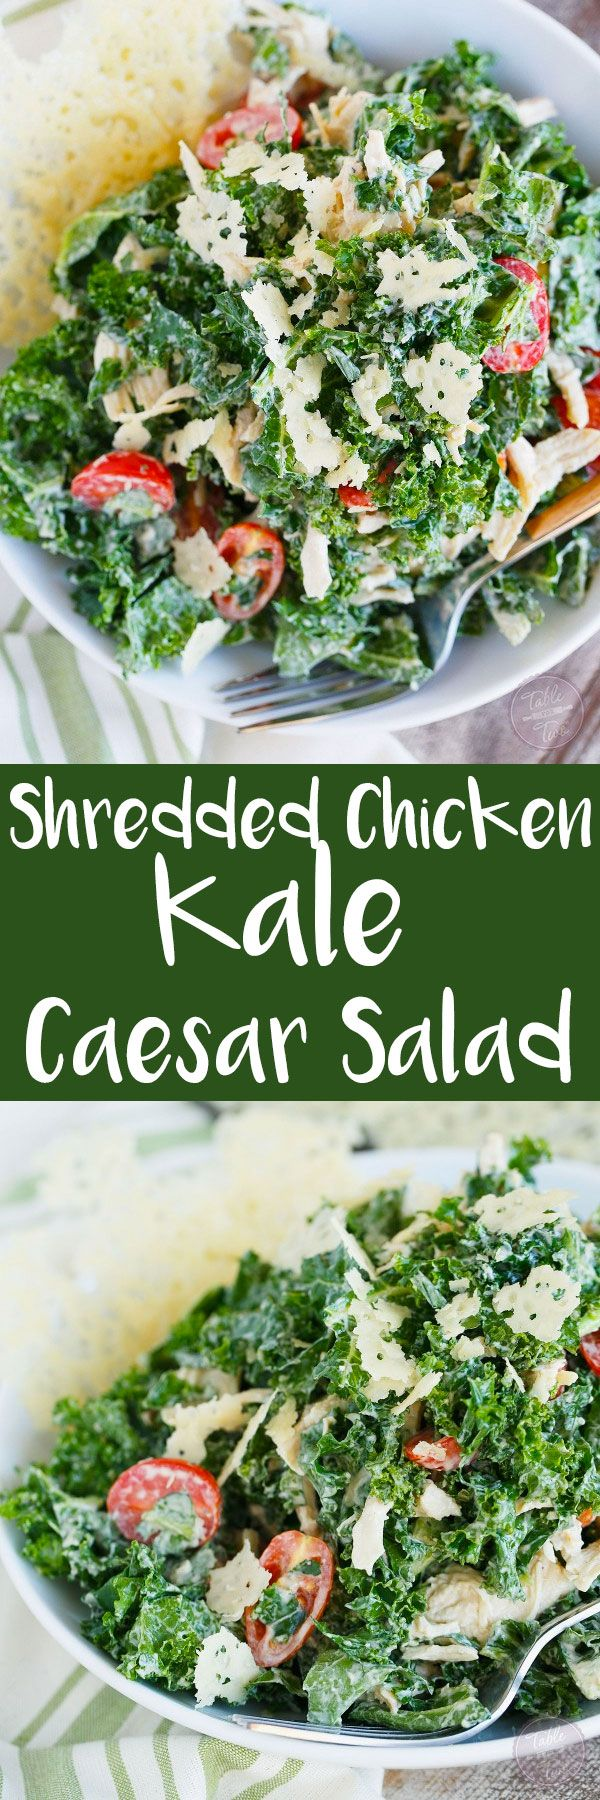 All Food and Drink: Shredded Chicken Kale Caesar Salad with Parmesan C...